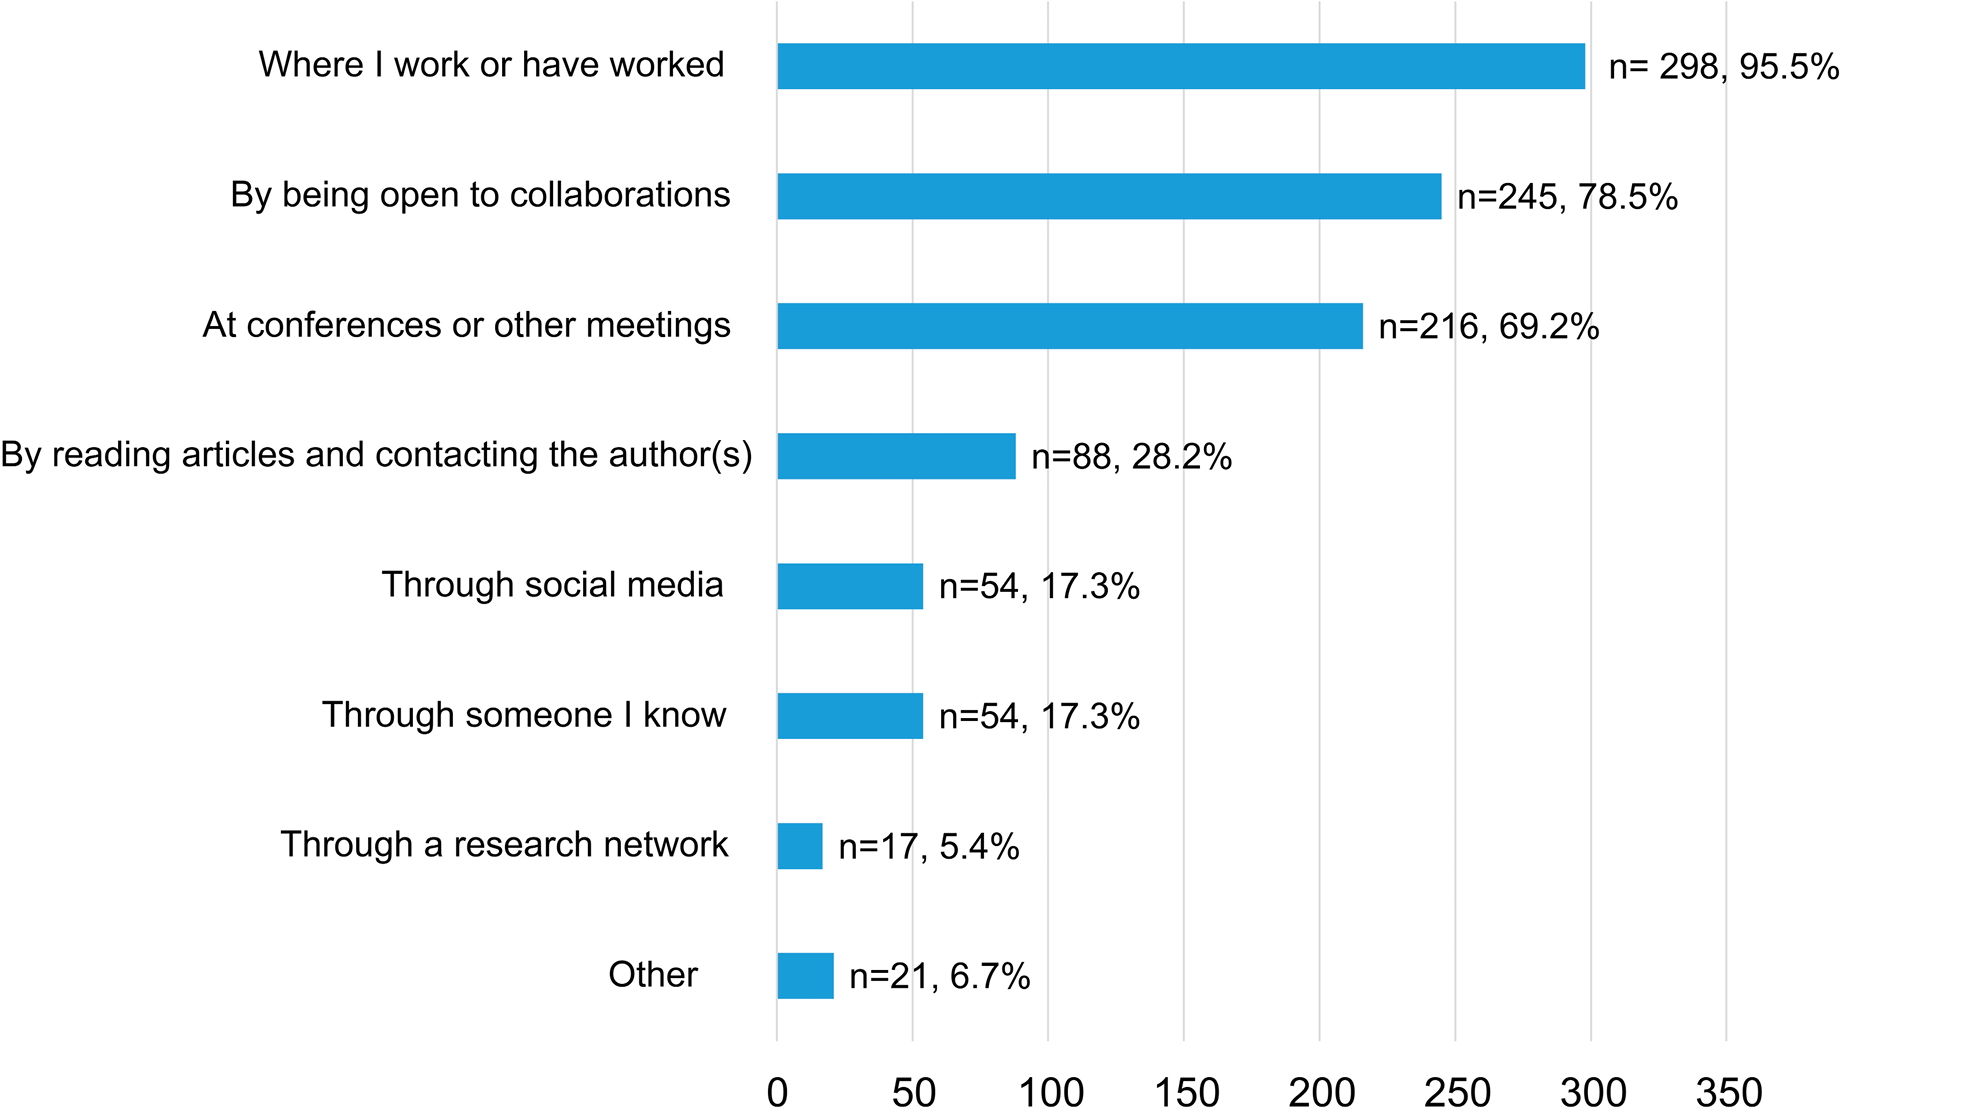 Figure 1. Strategies for Finding Research Collaborators among Survey Respondents